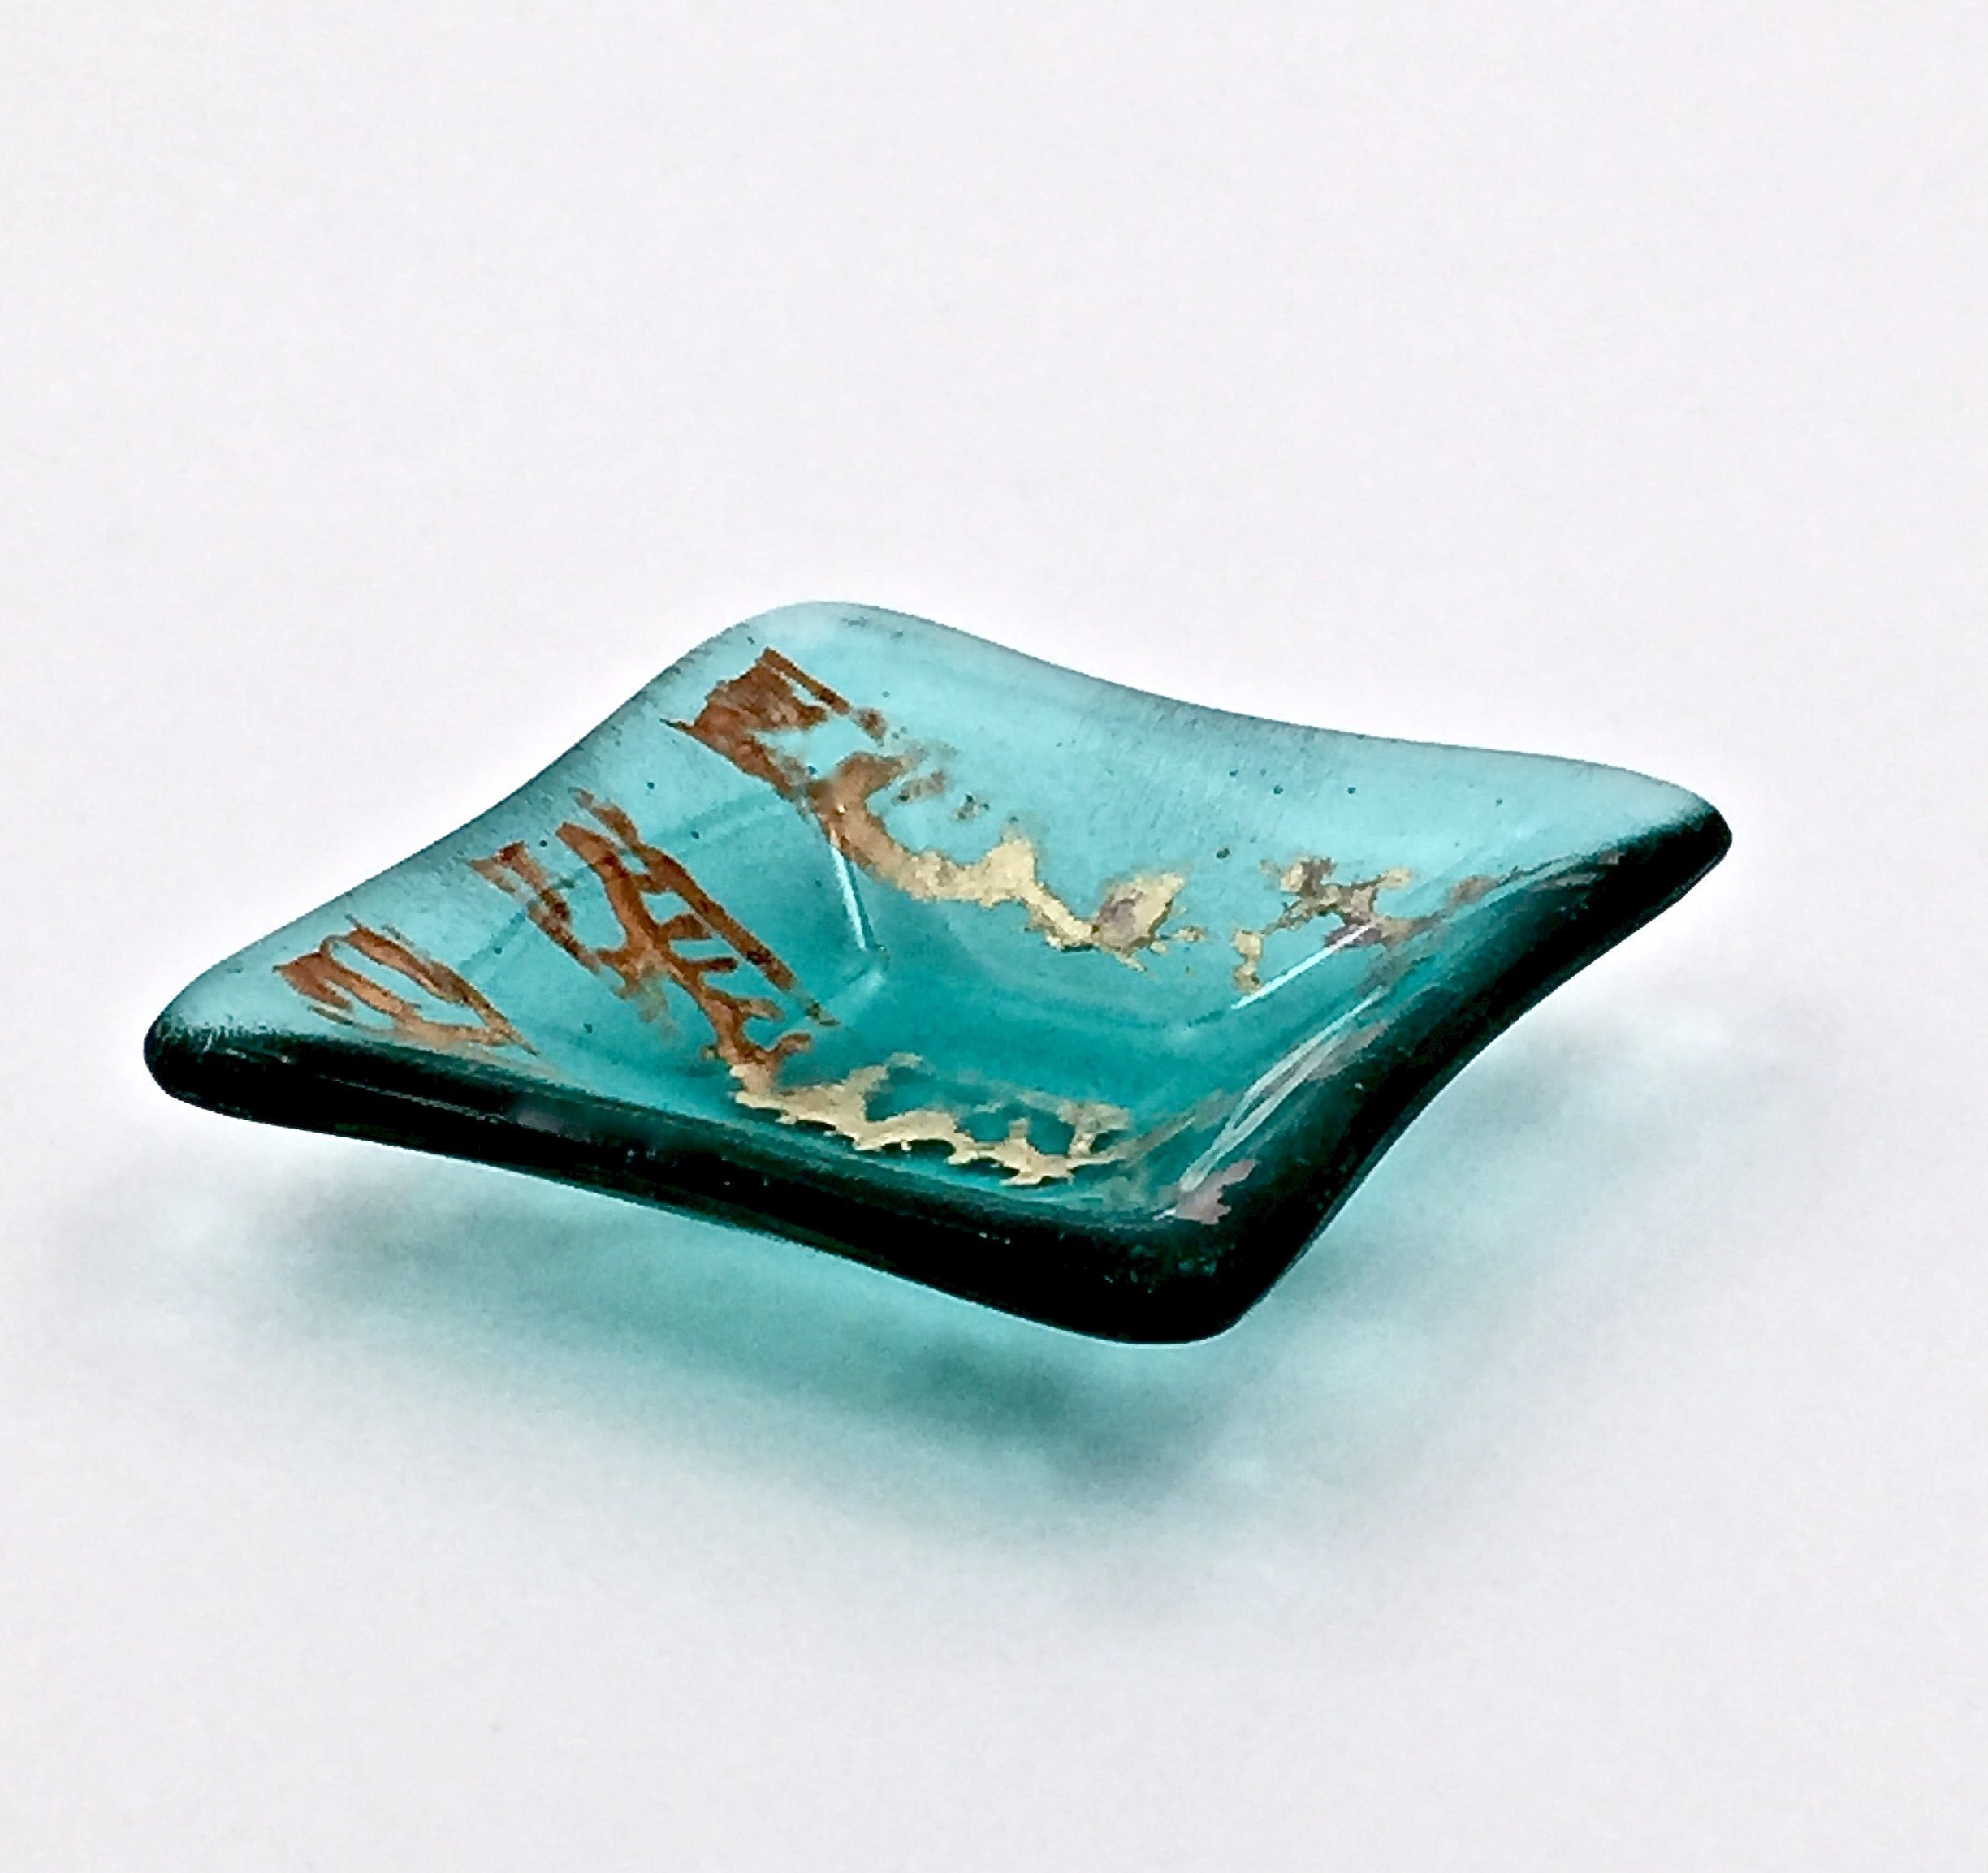 Metallic Copper, Gold and Silver Accents on a Transparent Aquamarine Blue Fused Glass Small Square Decorative Bowl